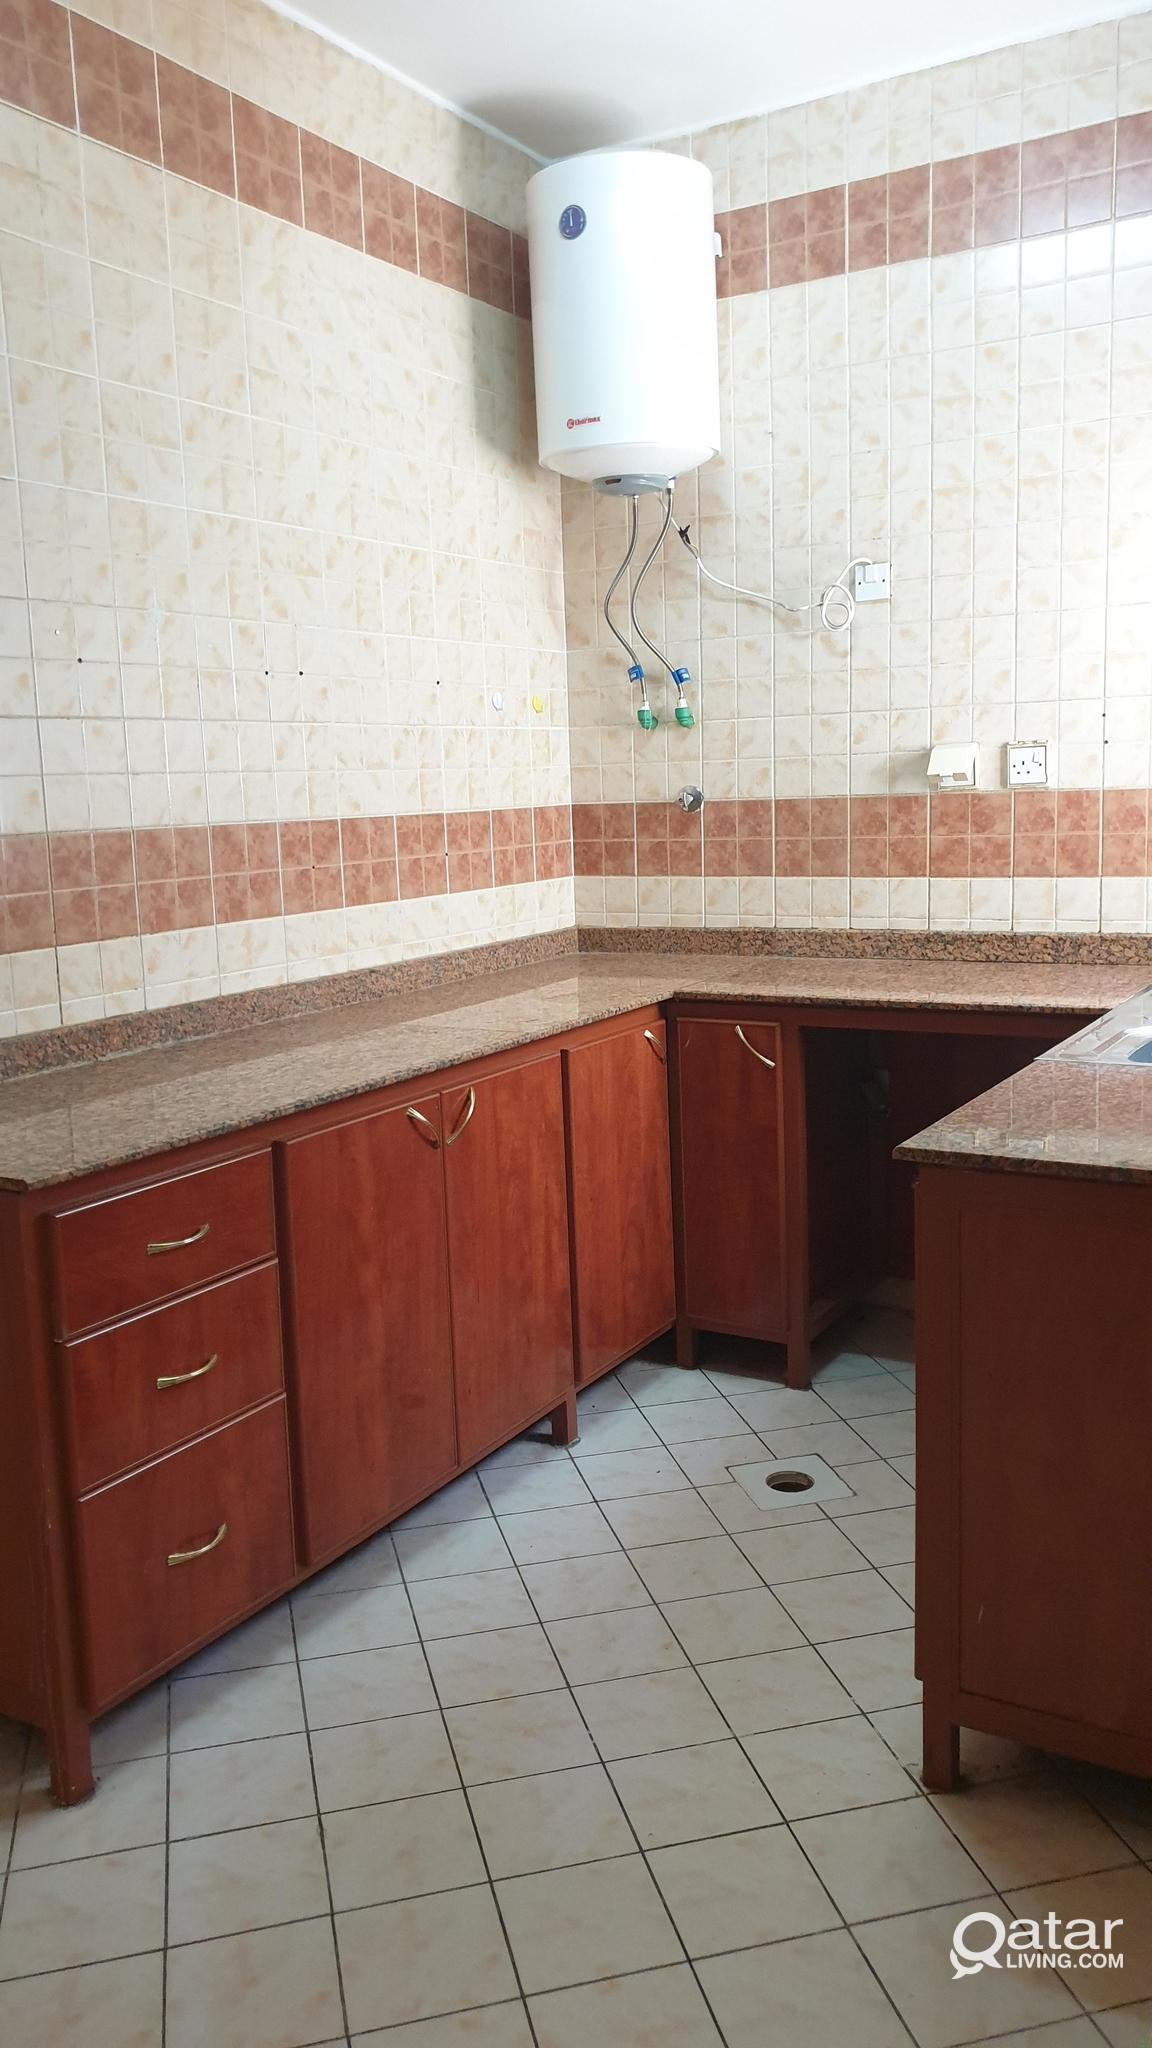 ! UNFURNISHED SPACIOUS 2 BED ROOM FLATS AVAILABLE